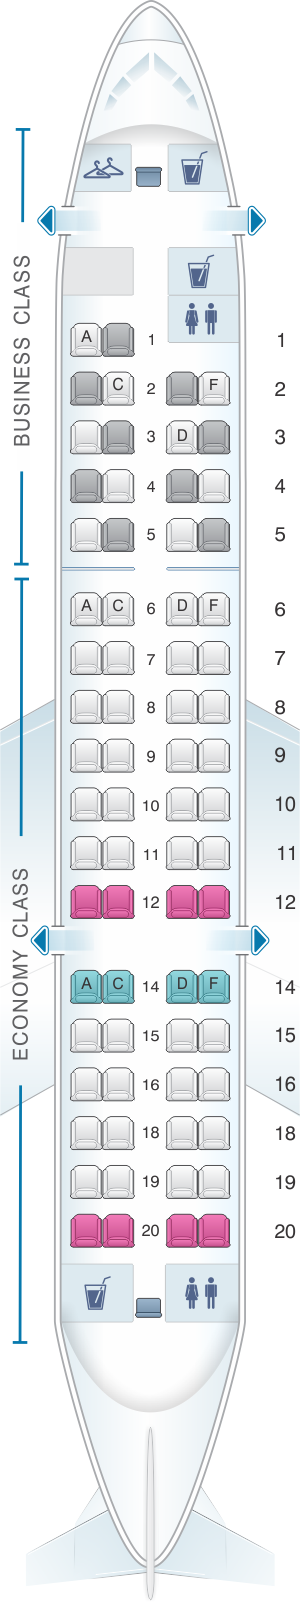 Seat map for Lufthansa Bombardier Canadair CRJ 700